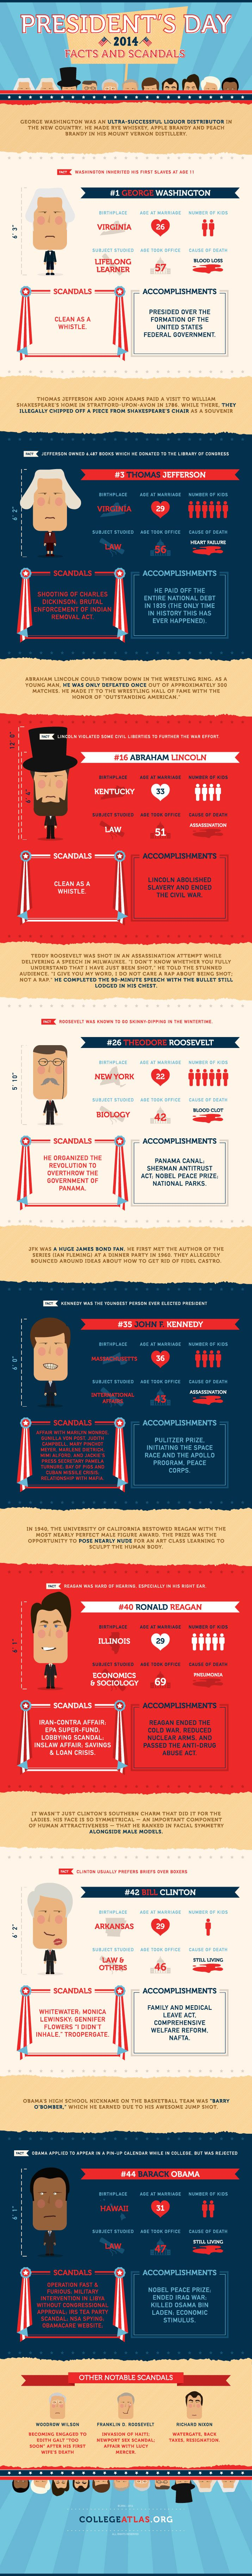 President's Day Facts and Scandals #Infographics — Lightscap3s.com